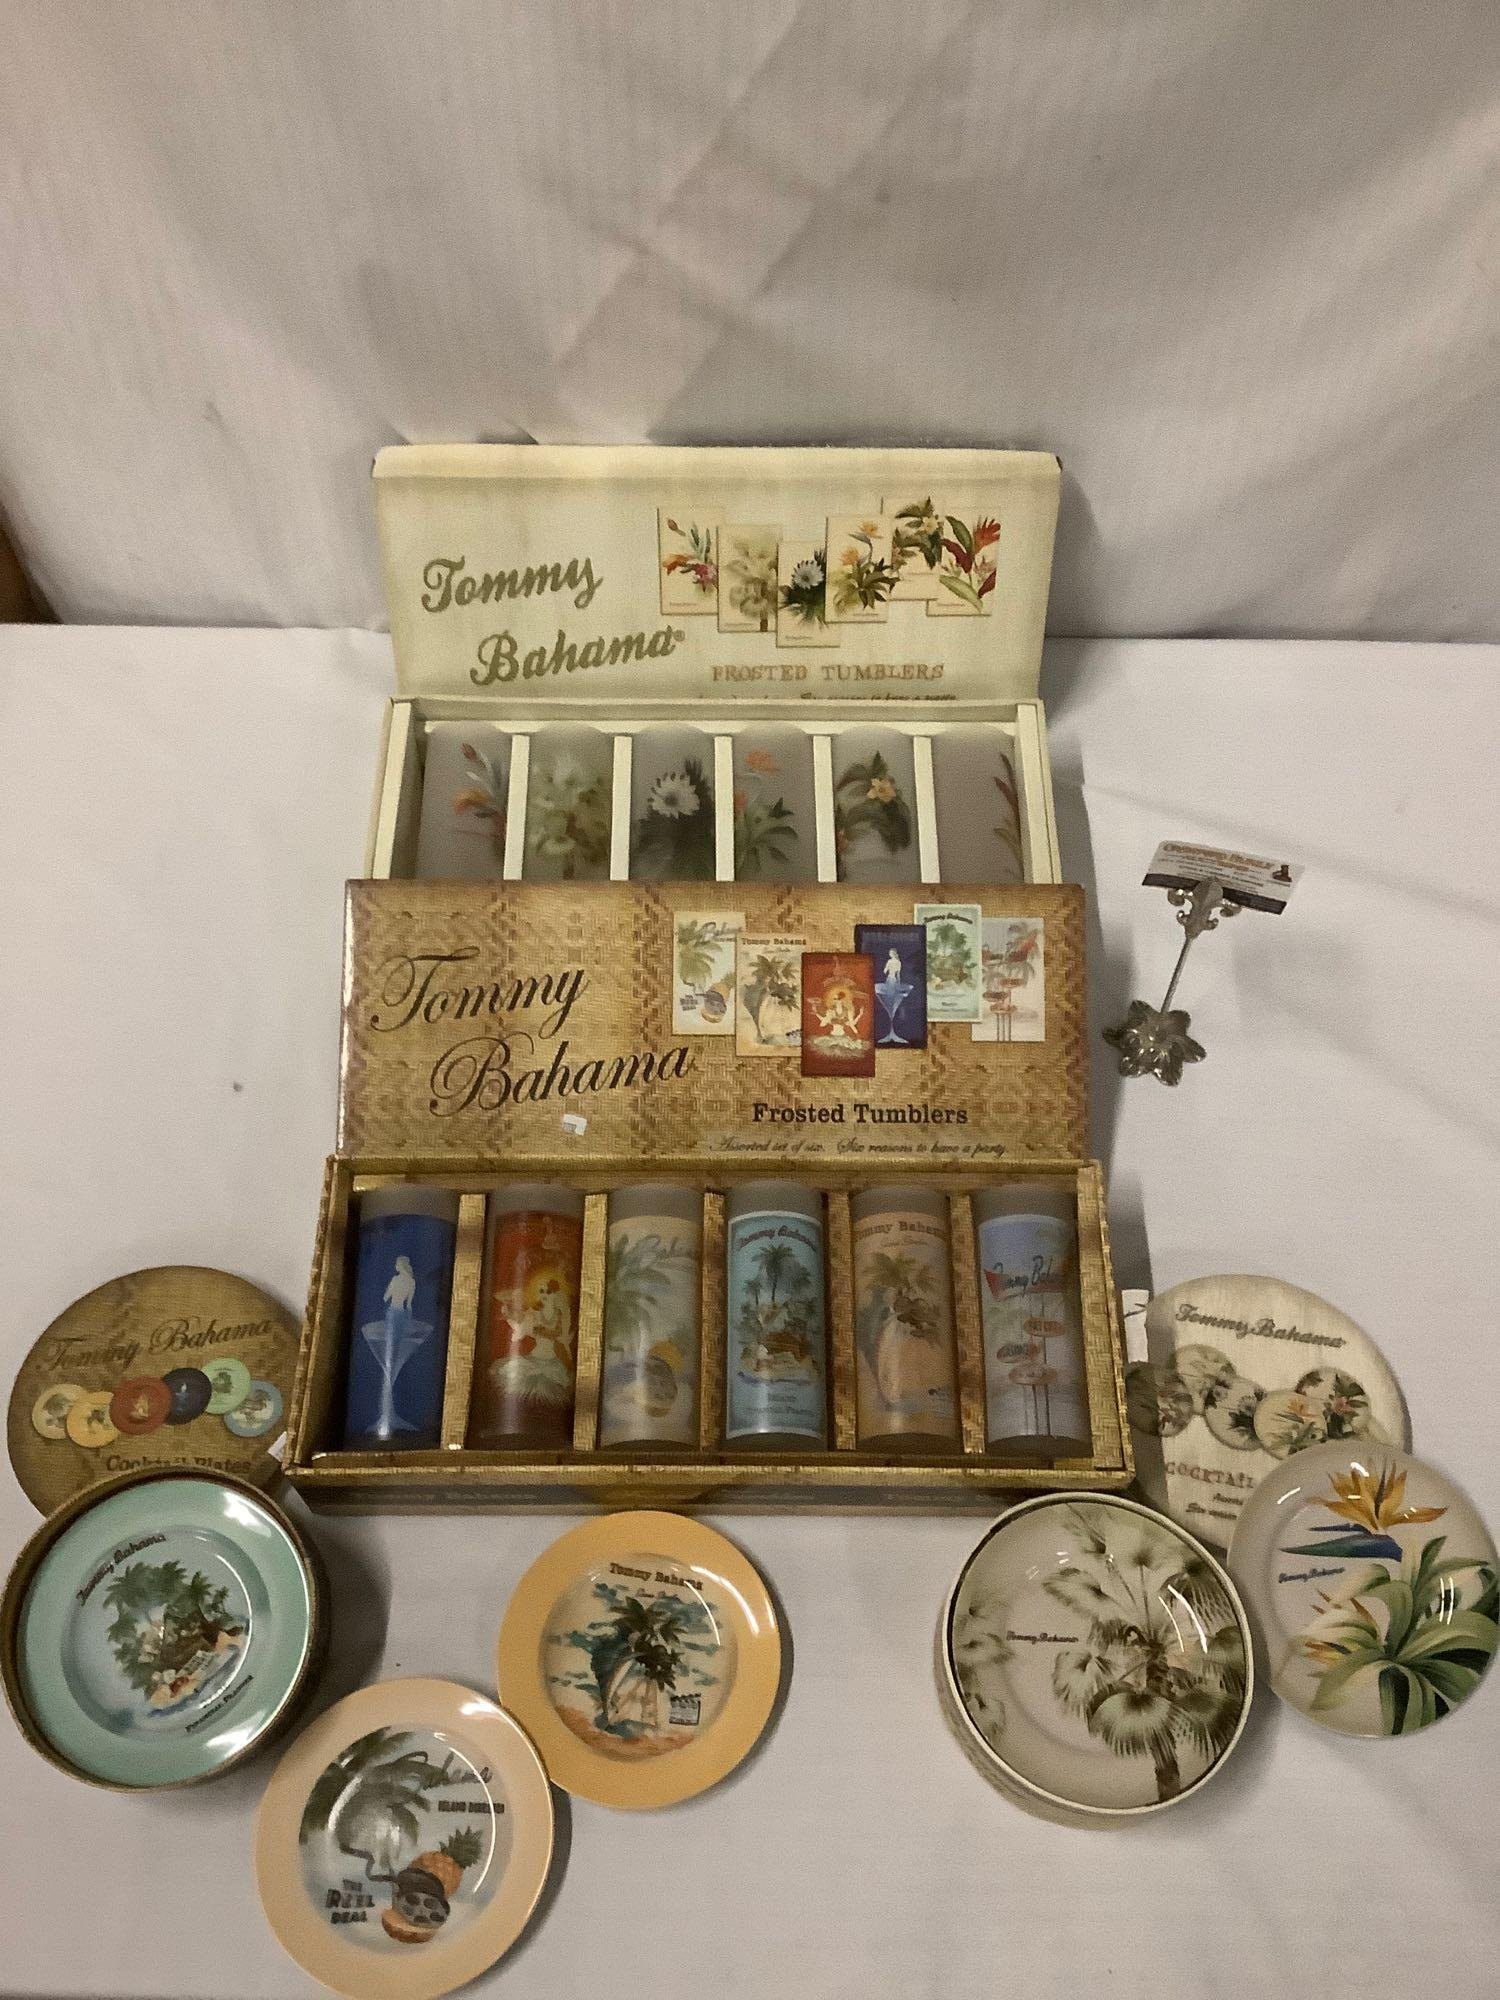 4 boxed sets - 2 Tommy Bahama frosted tumblers & 2x